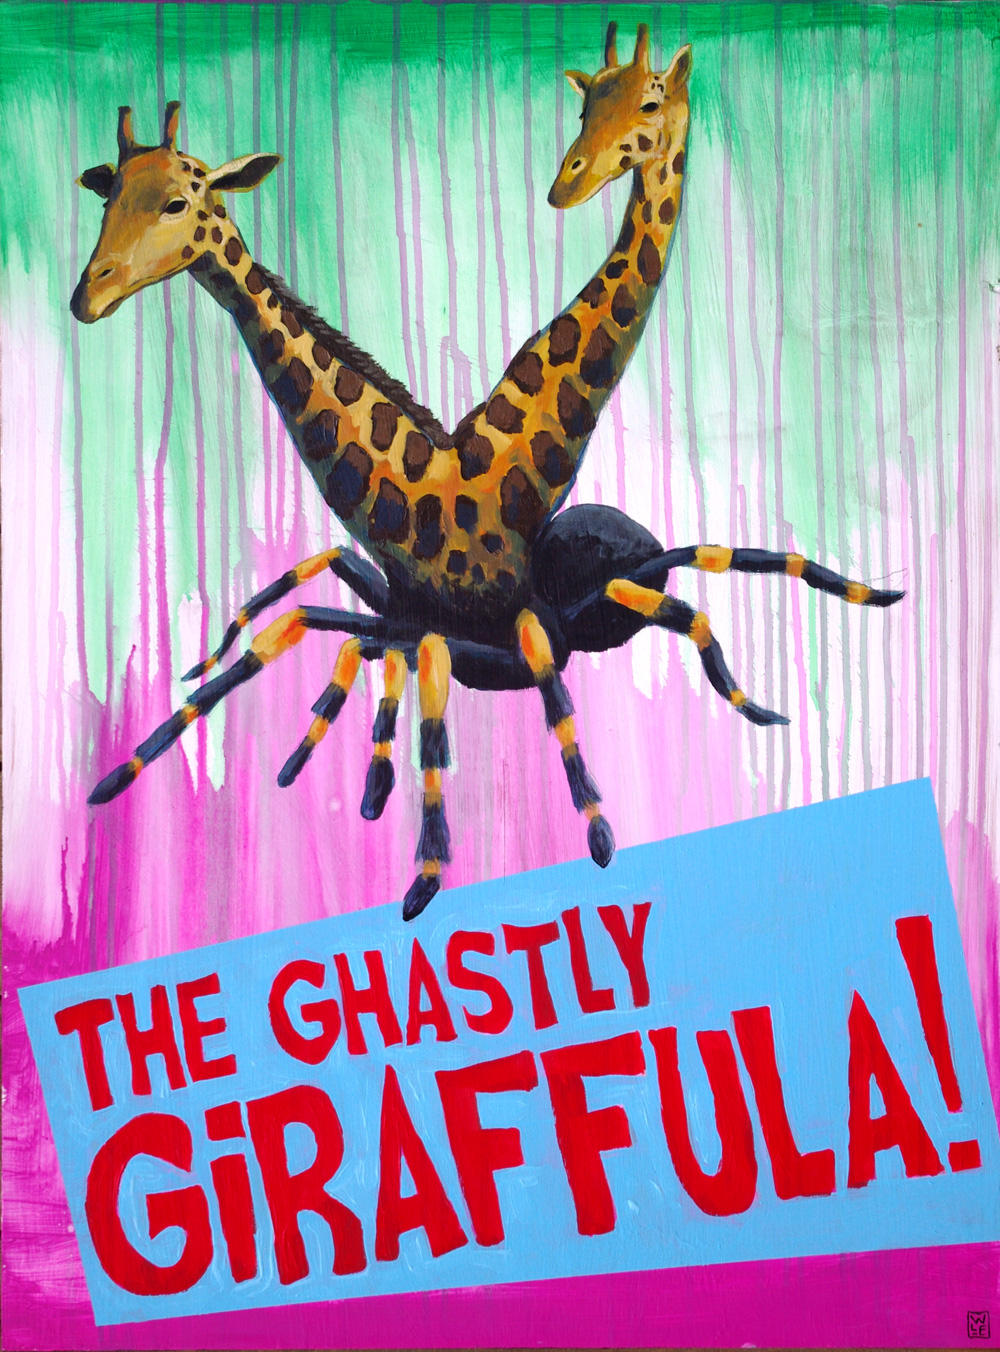 Haiku Tuesday: The Ghastly Giraffula